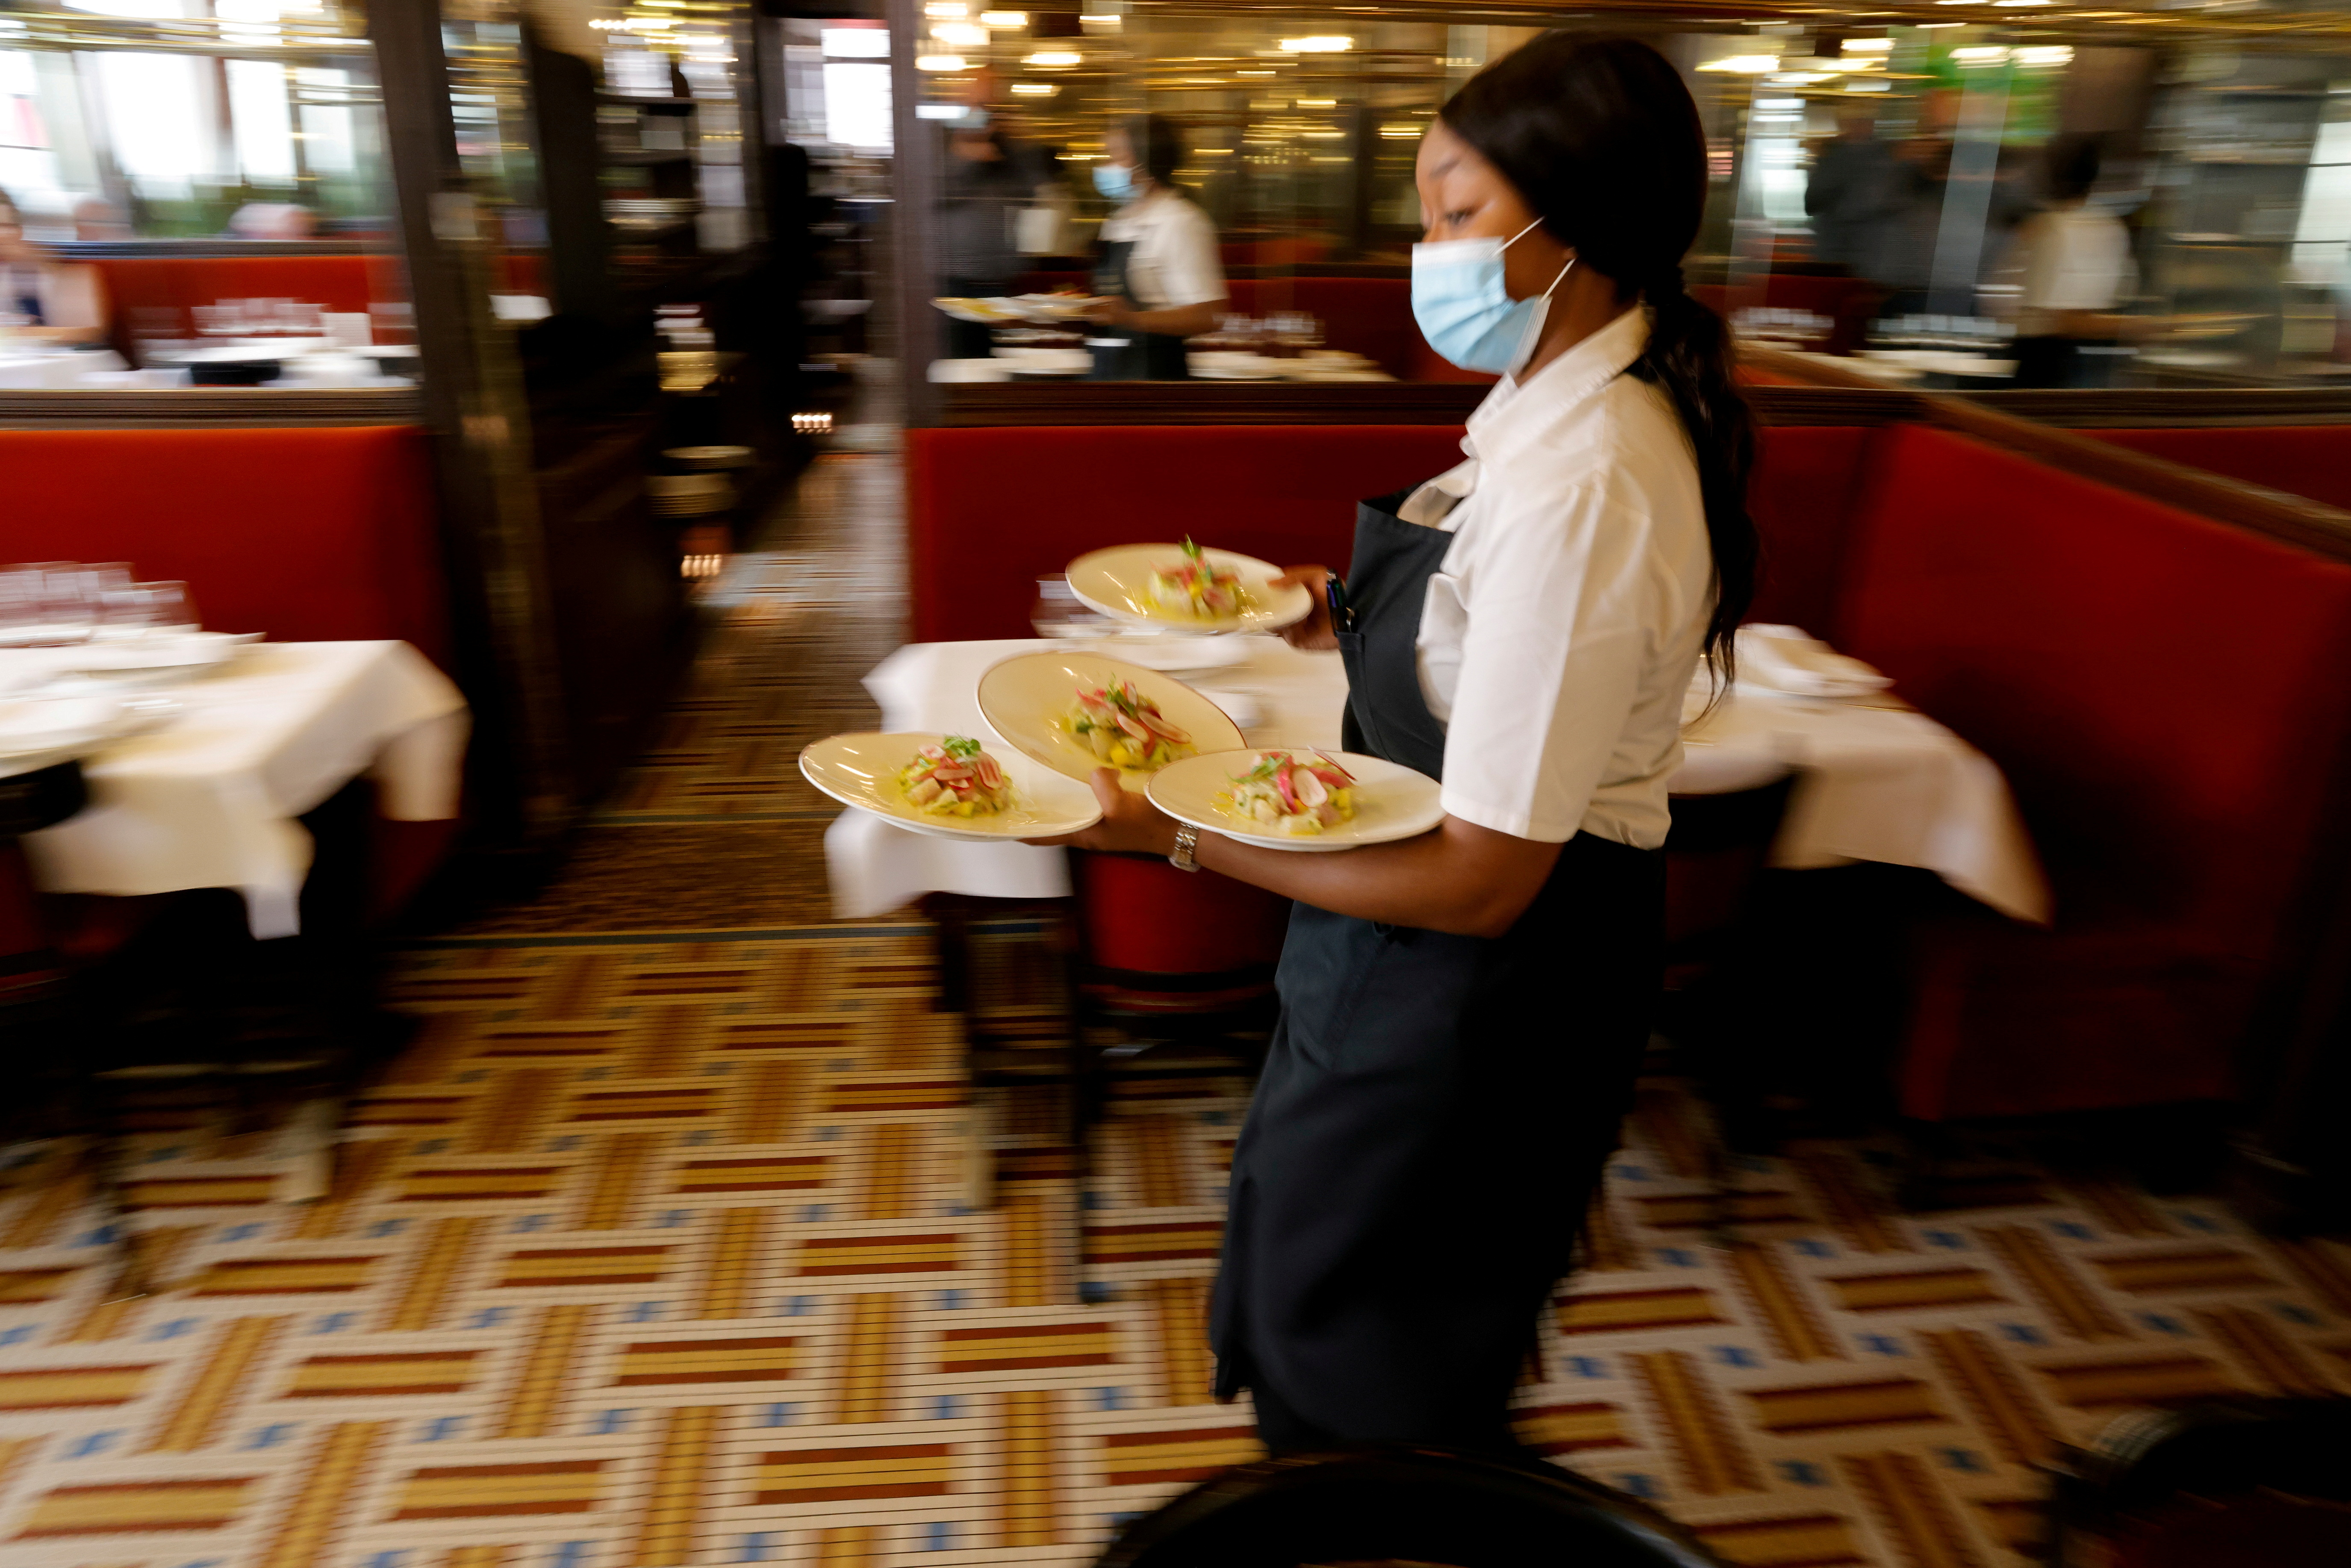 A waiter serves dishes in a dining room at Au Petit Riche restaurant in Paris as cafes, bars and restaurants reopen indoor dining rooms in France, June 9, 2021. REUTERS/Pascal Rossignol/File Photo